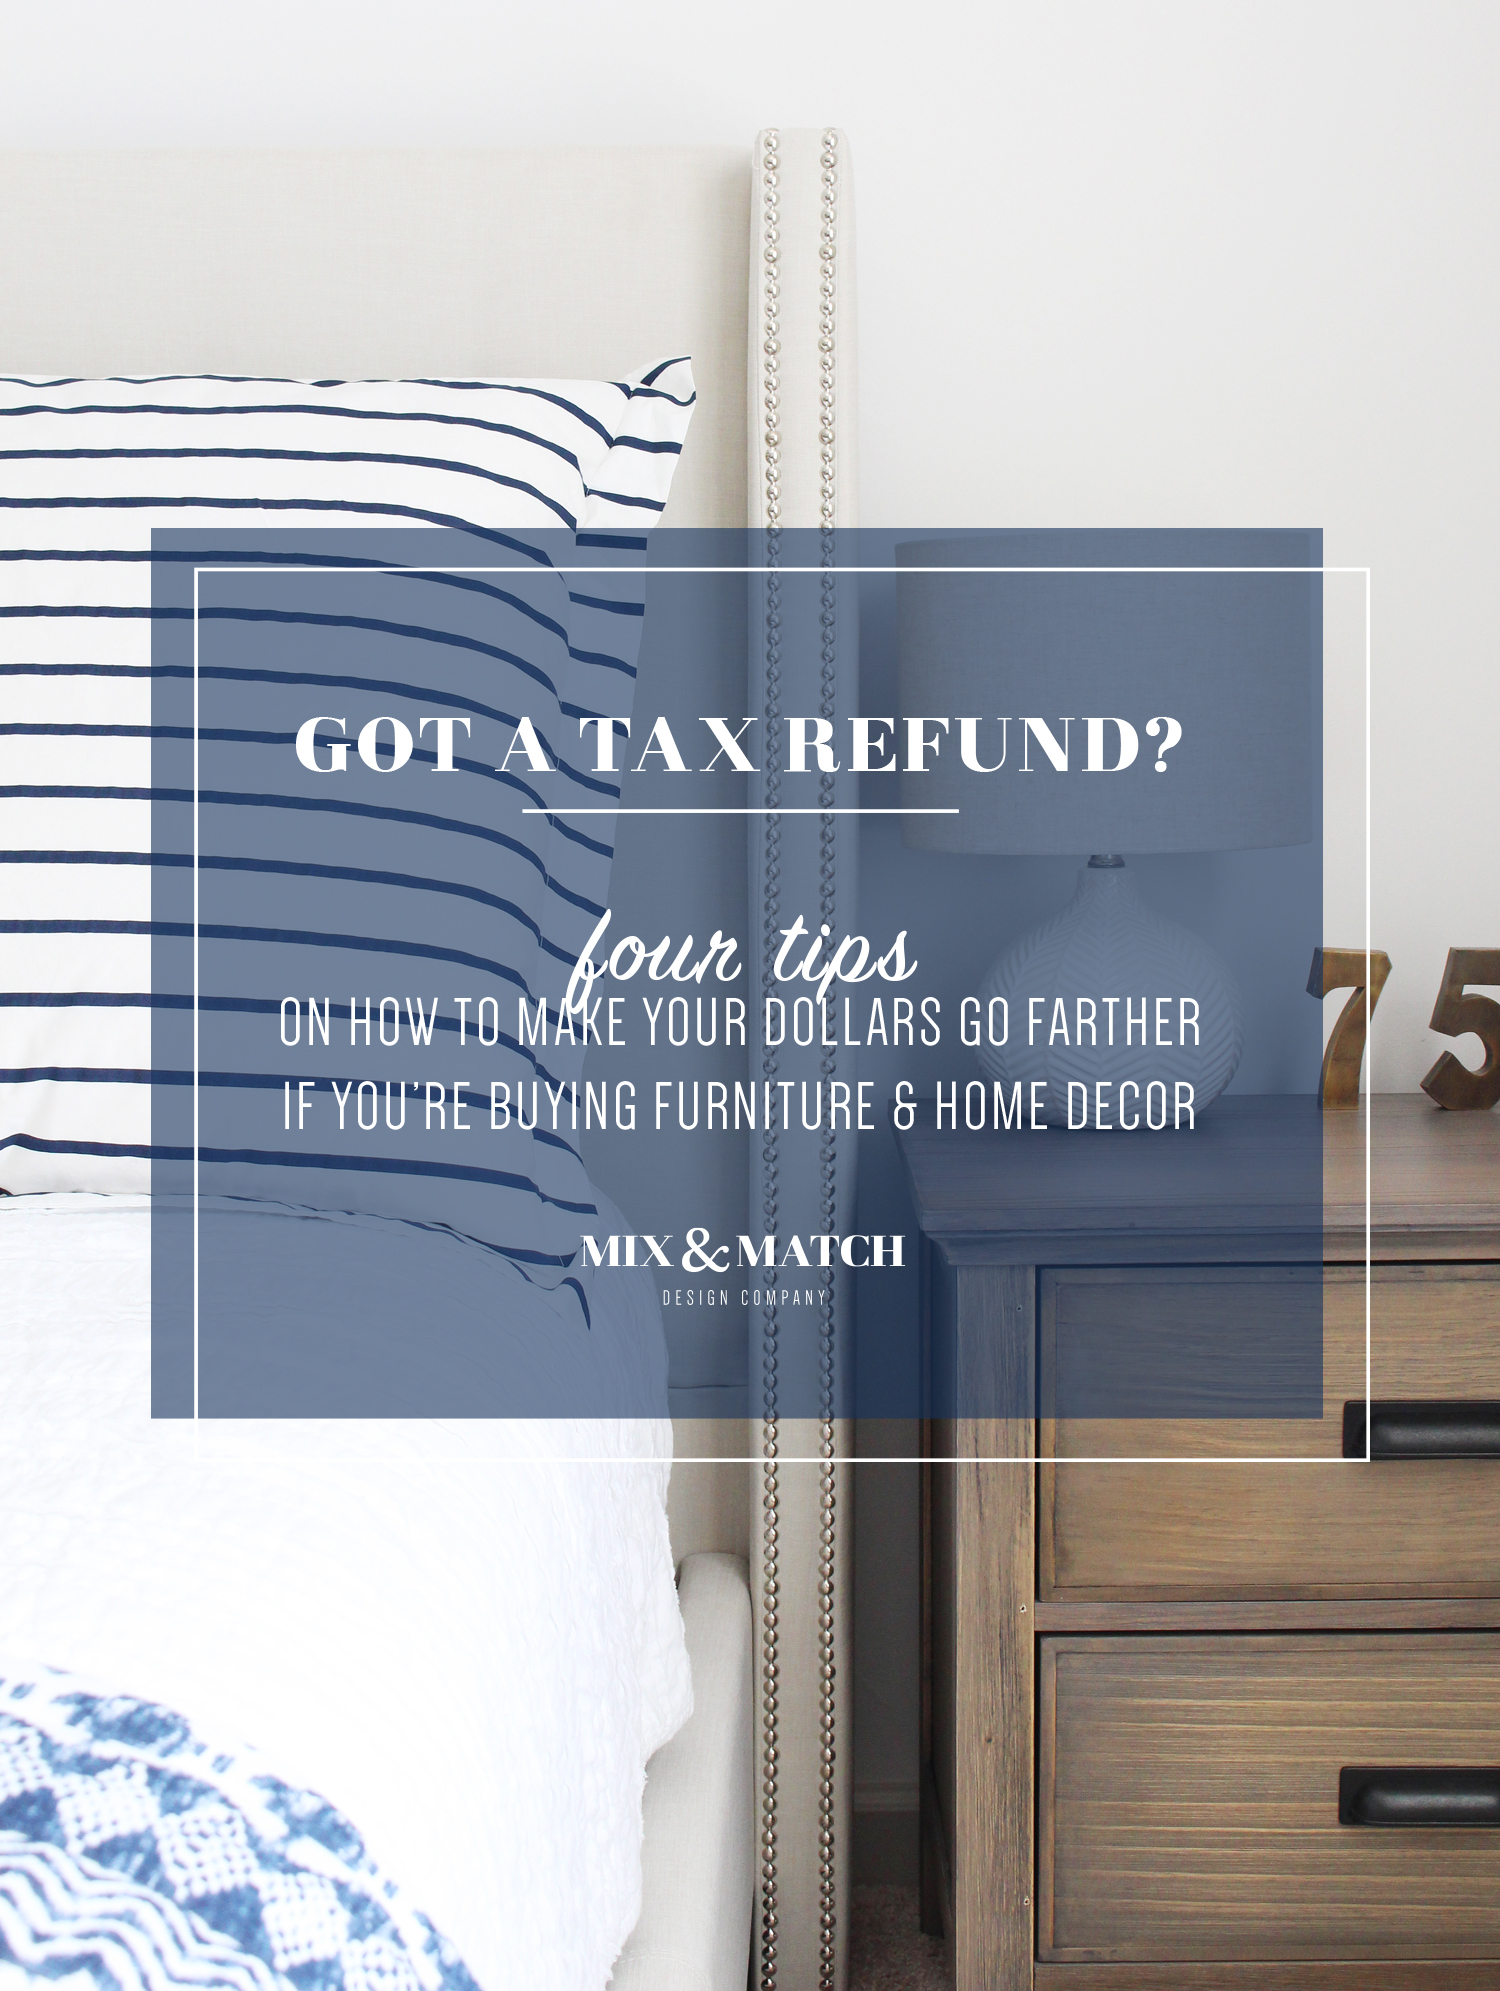 Four tips on how to maximize your tax refund dollars when you're putting them toward furniture and home decor.